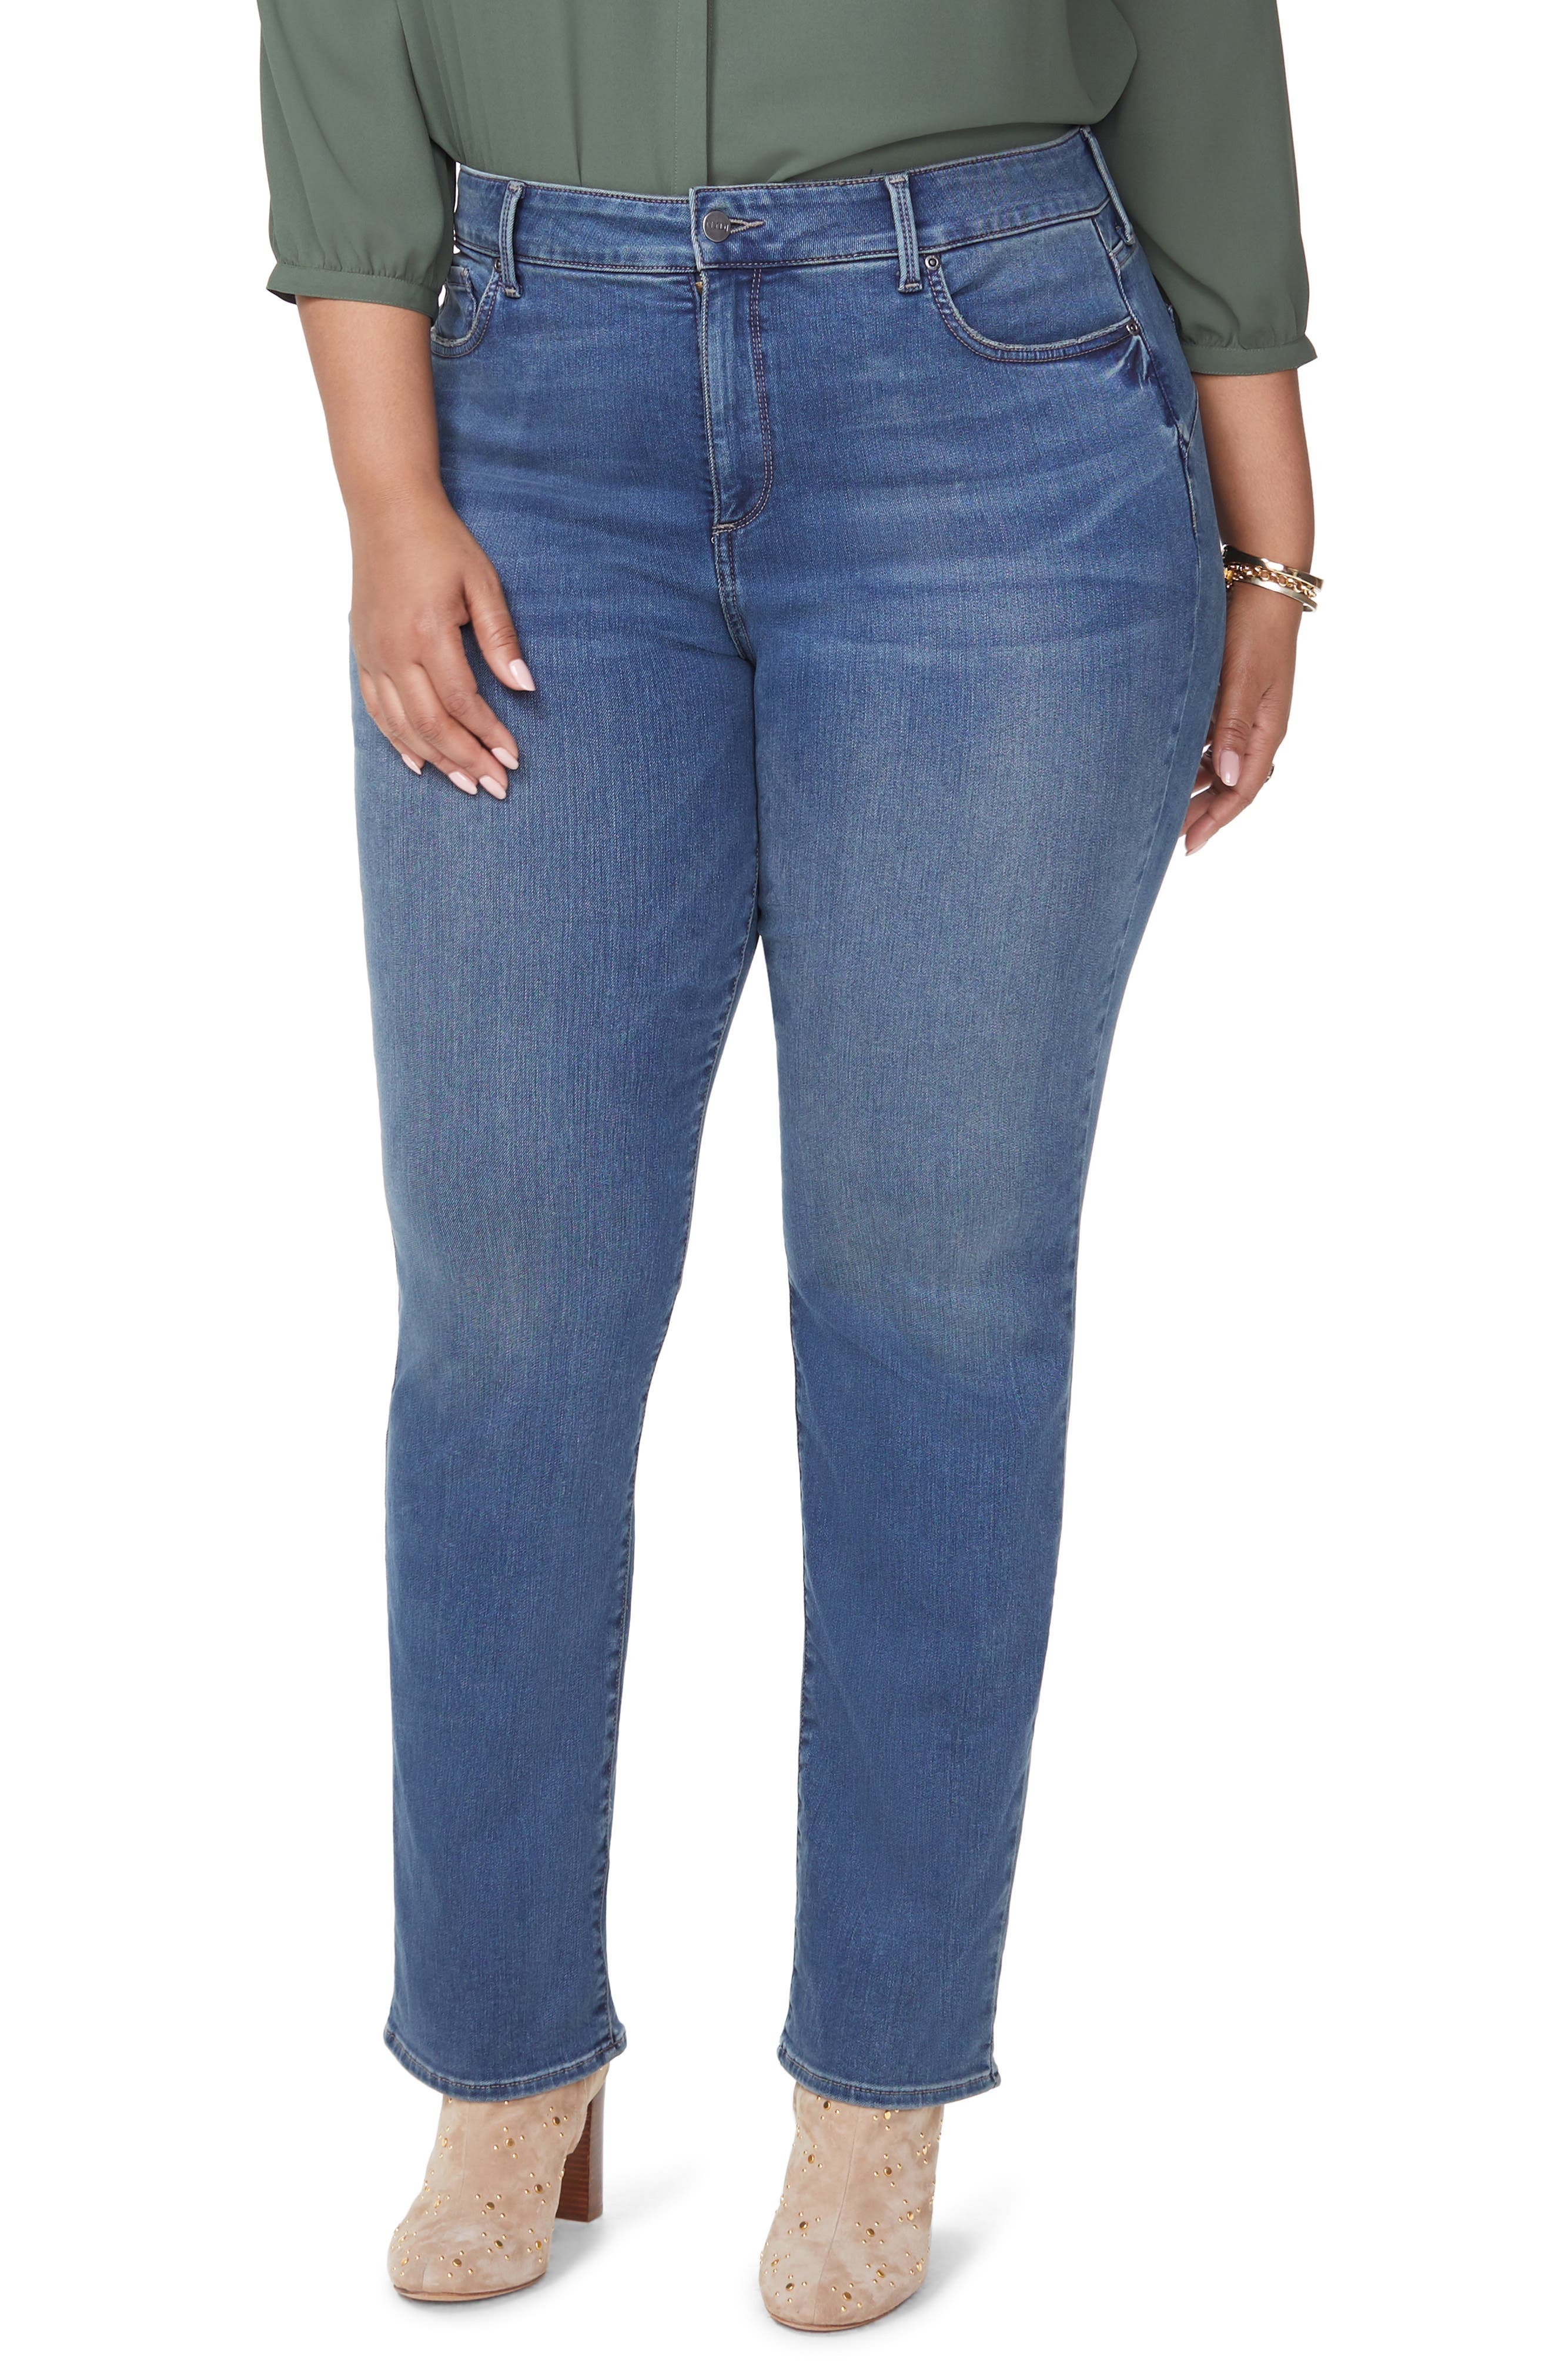 Marilyn Uplift Straight Leg Jeans,                         Main,                         color, FERRIS